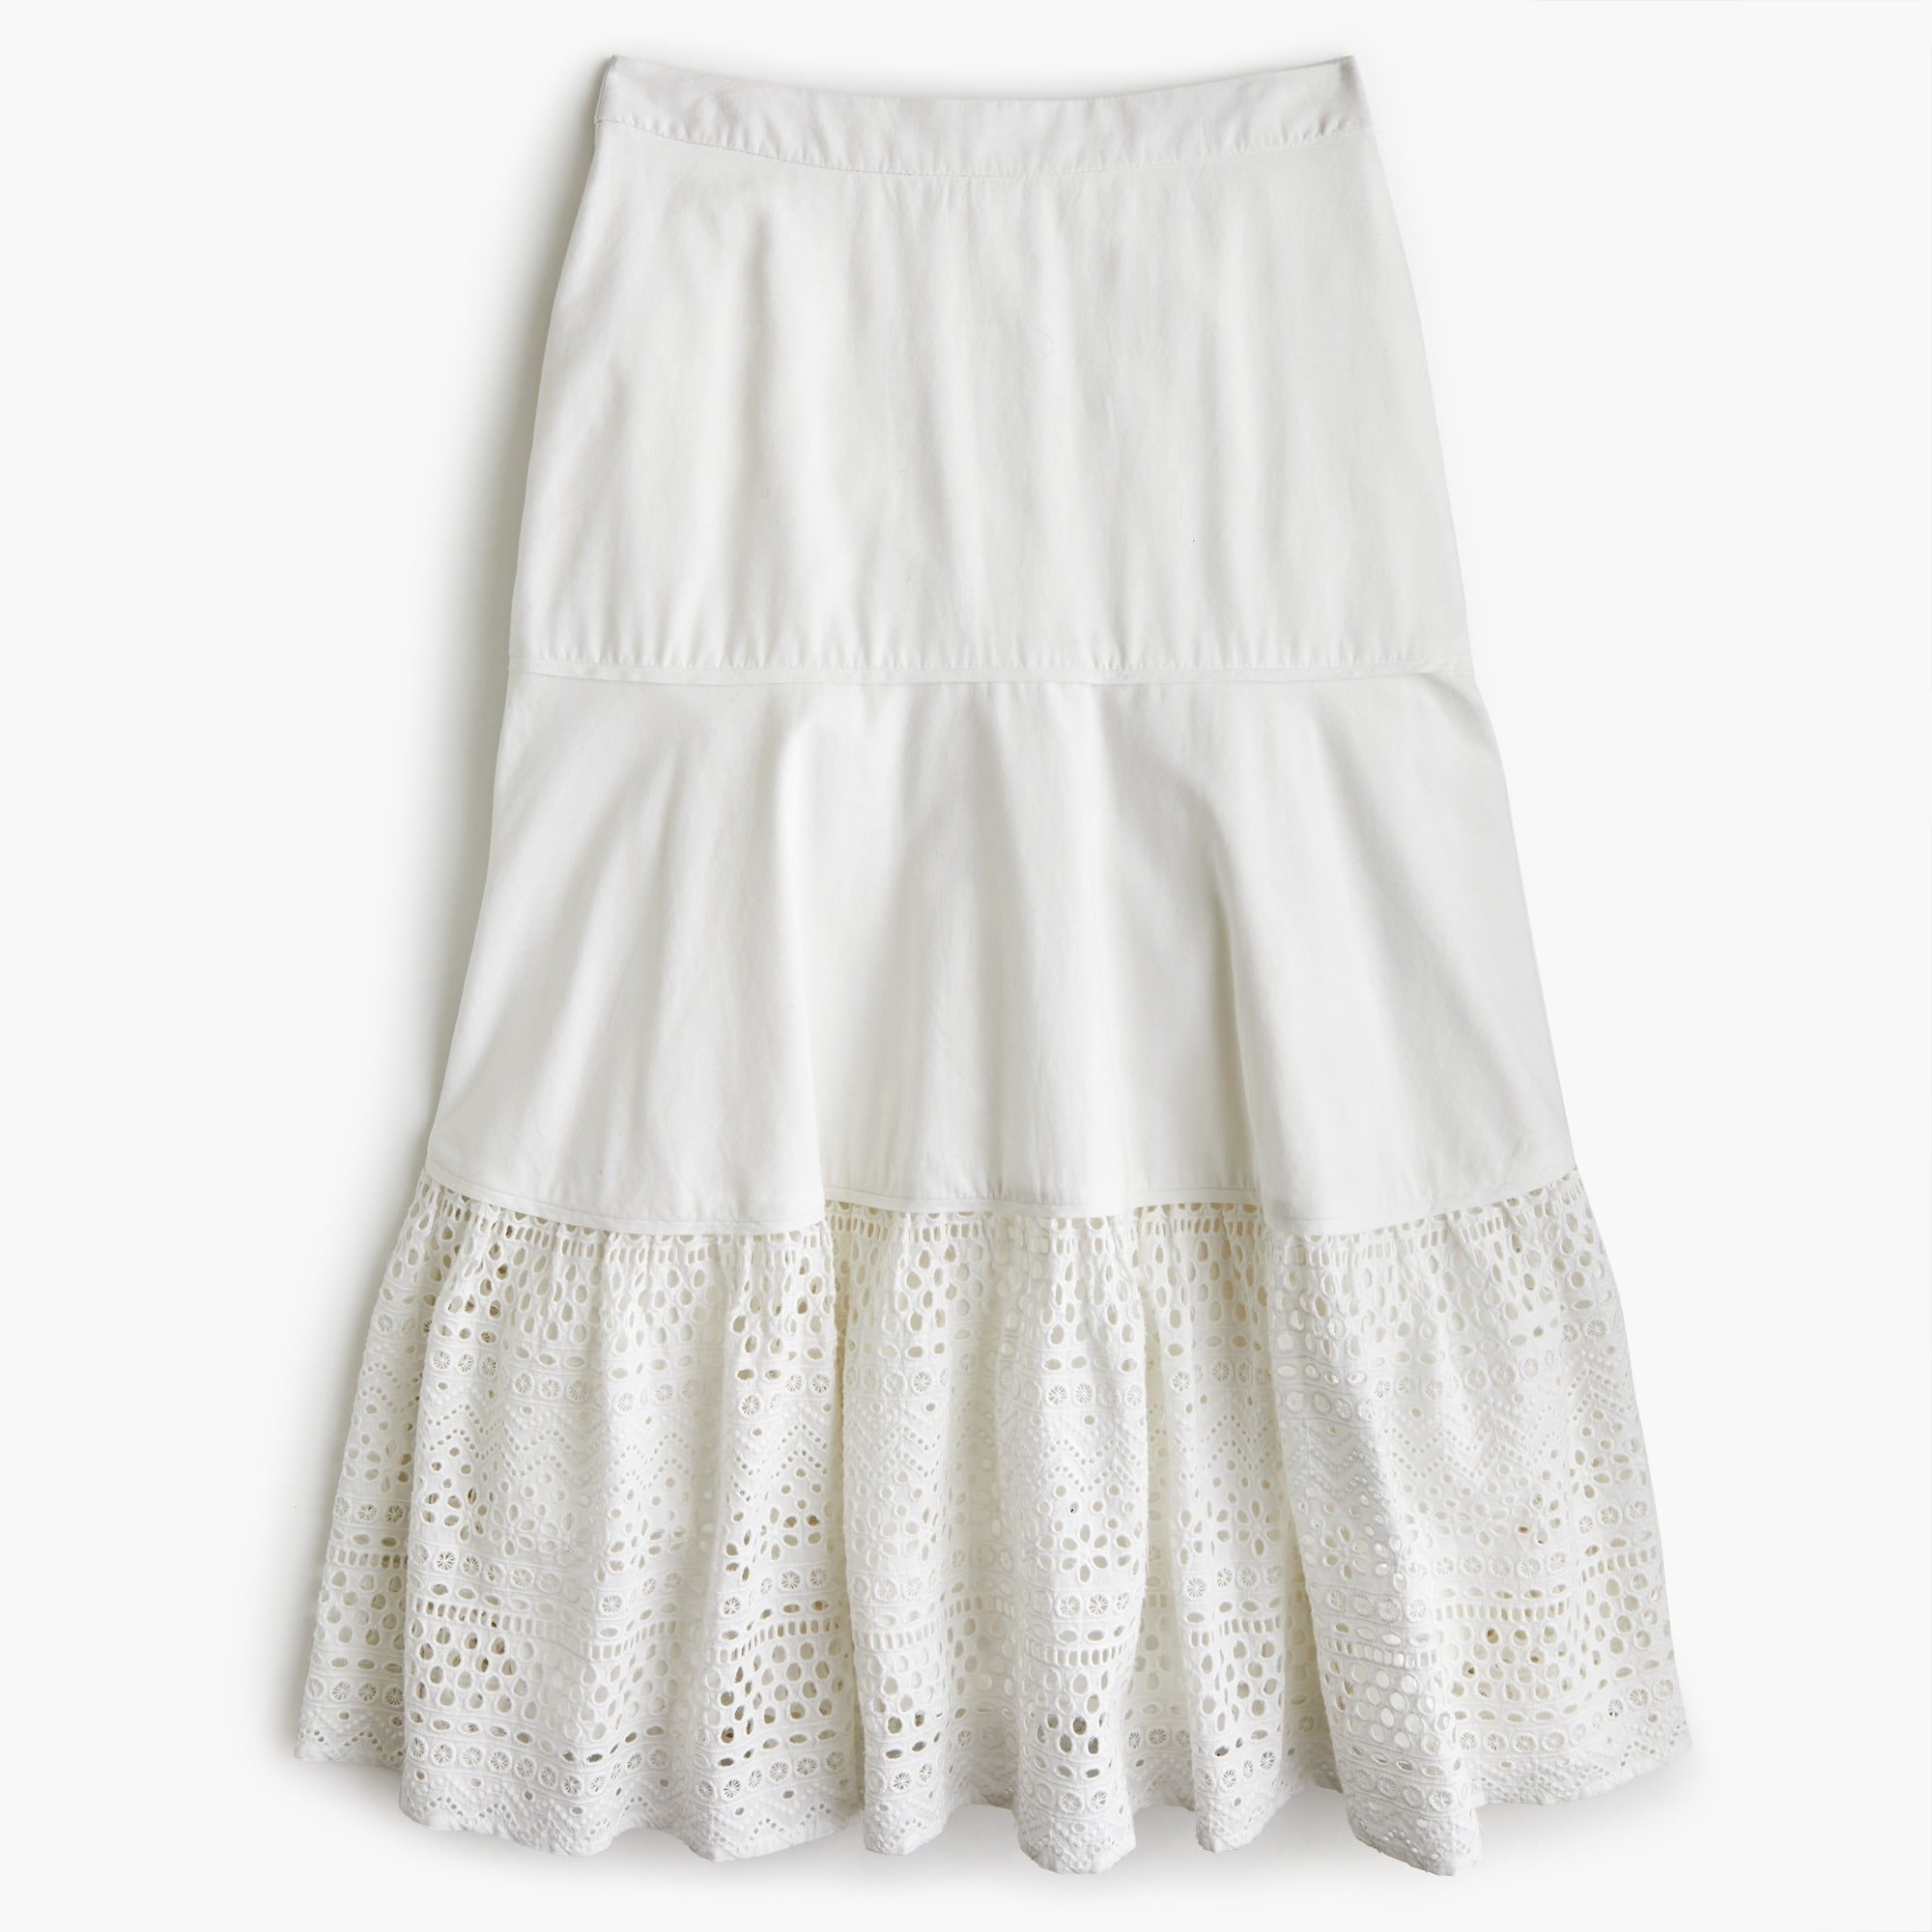 Image 1 for Petite Point Sur tiered skirt in mixed eyelet